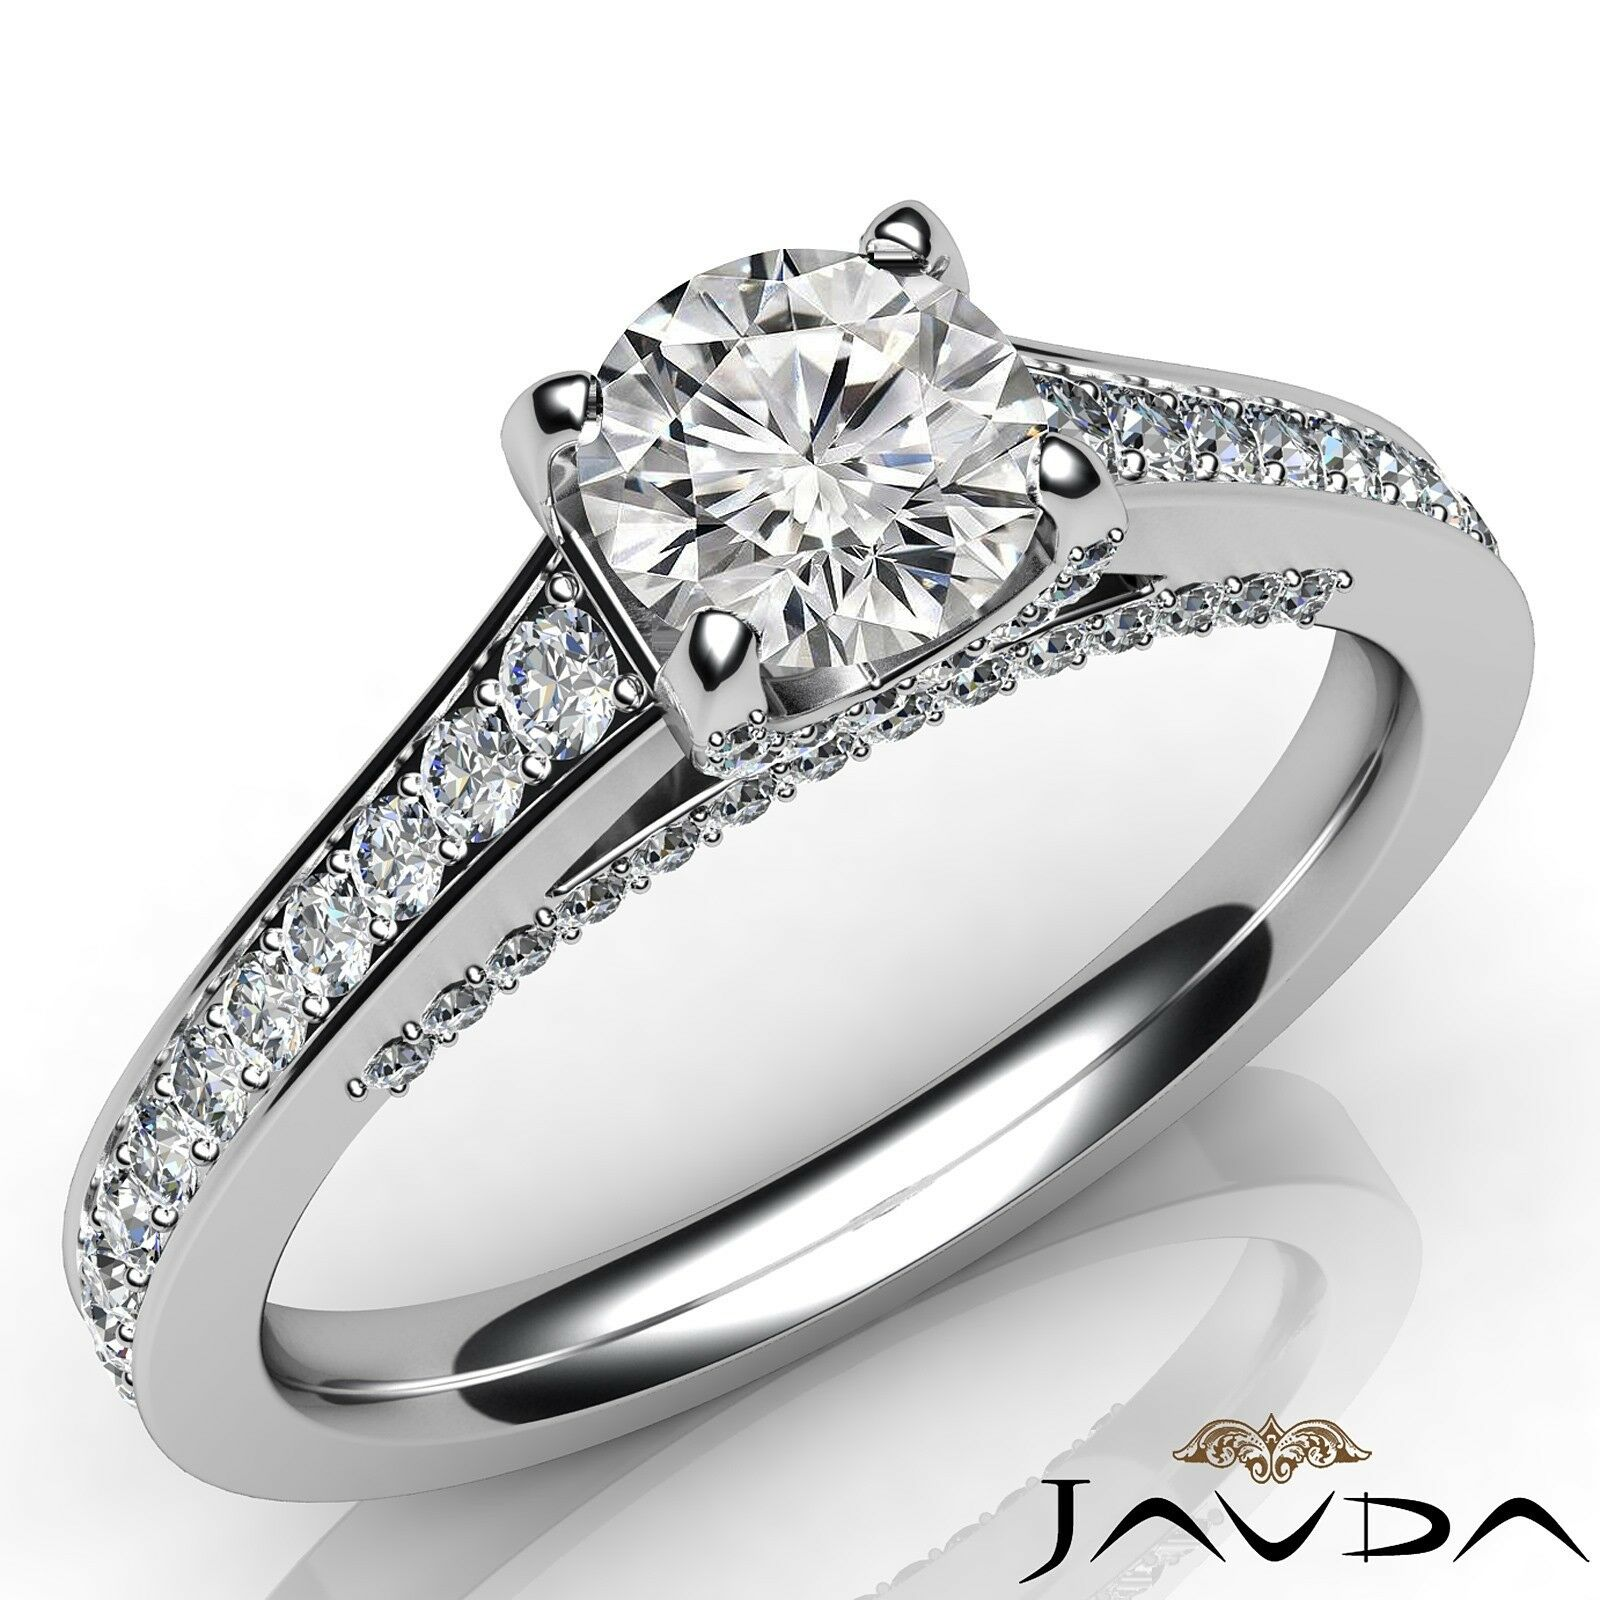 1.15ctw Natural 100% Round Diamond Engagement Ring GIA F-VVS2 White Gold Rings